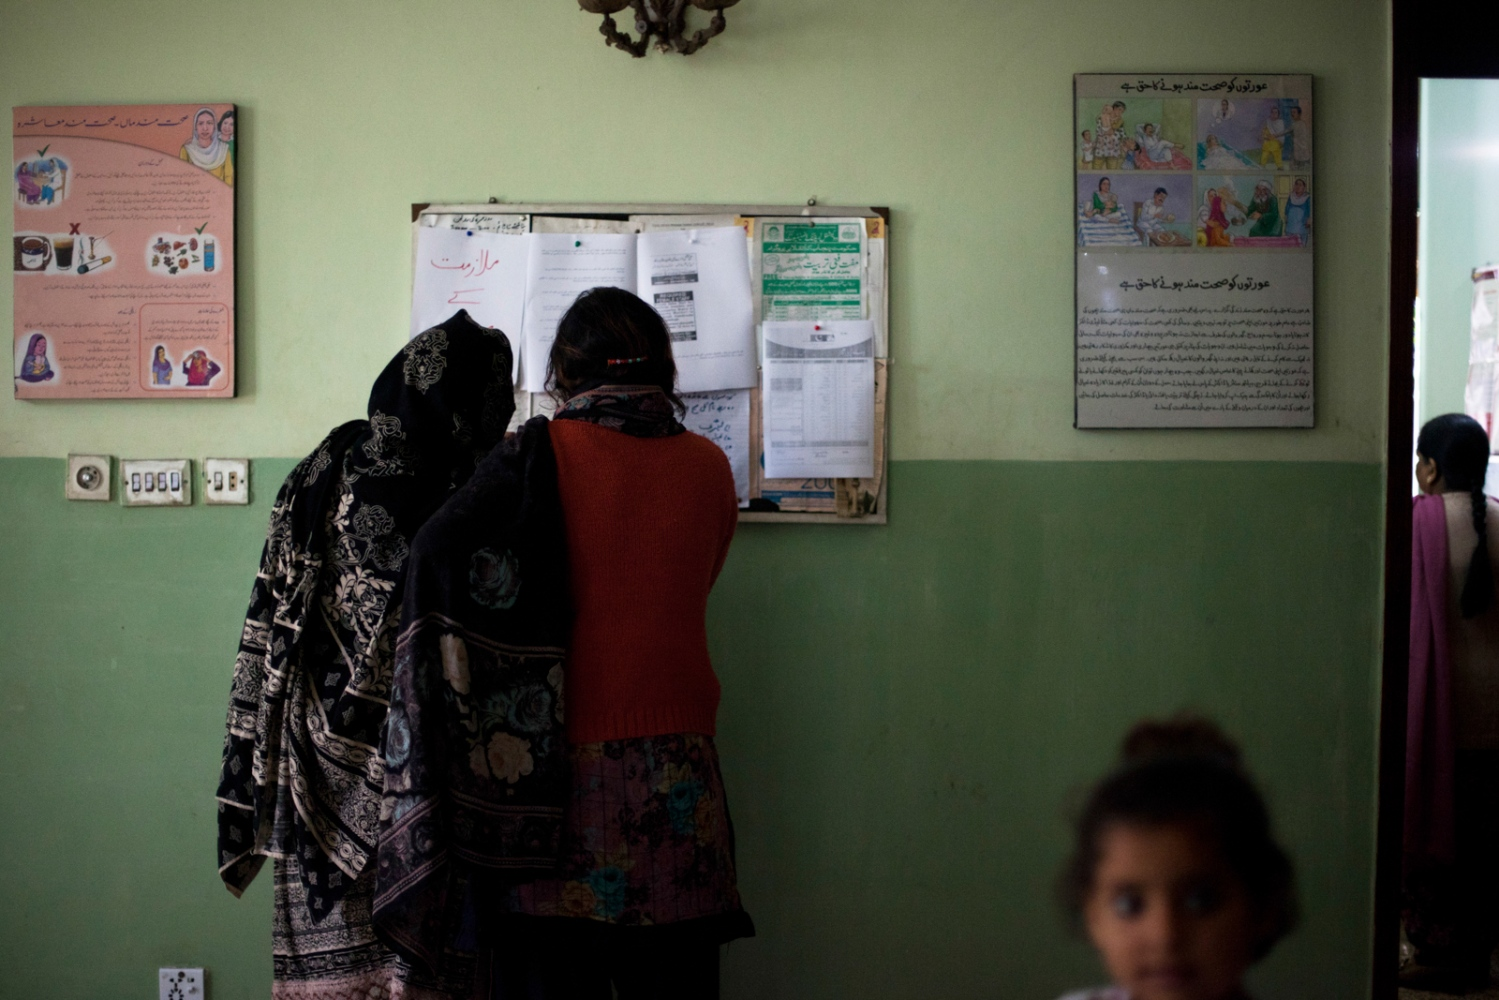 Pakistani residents look at a notice board advertising jobs at the Dastak women's shelter in Lahore on February 20, 2013.